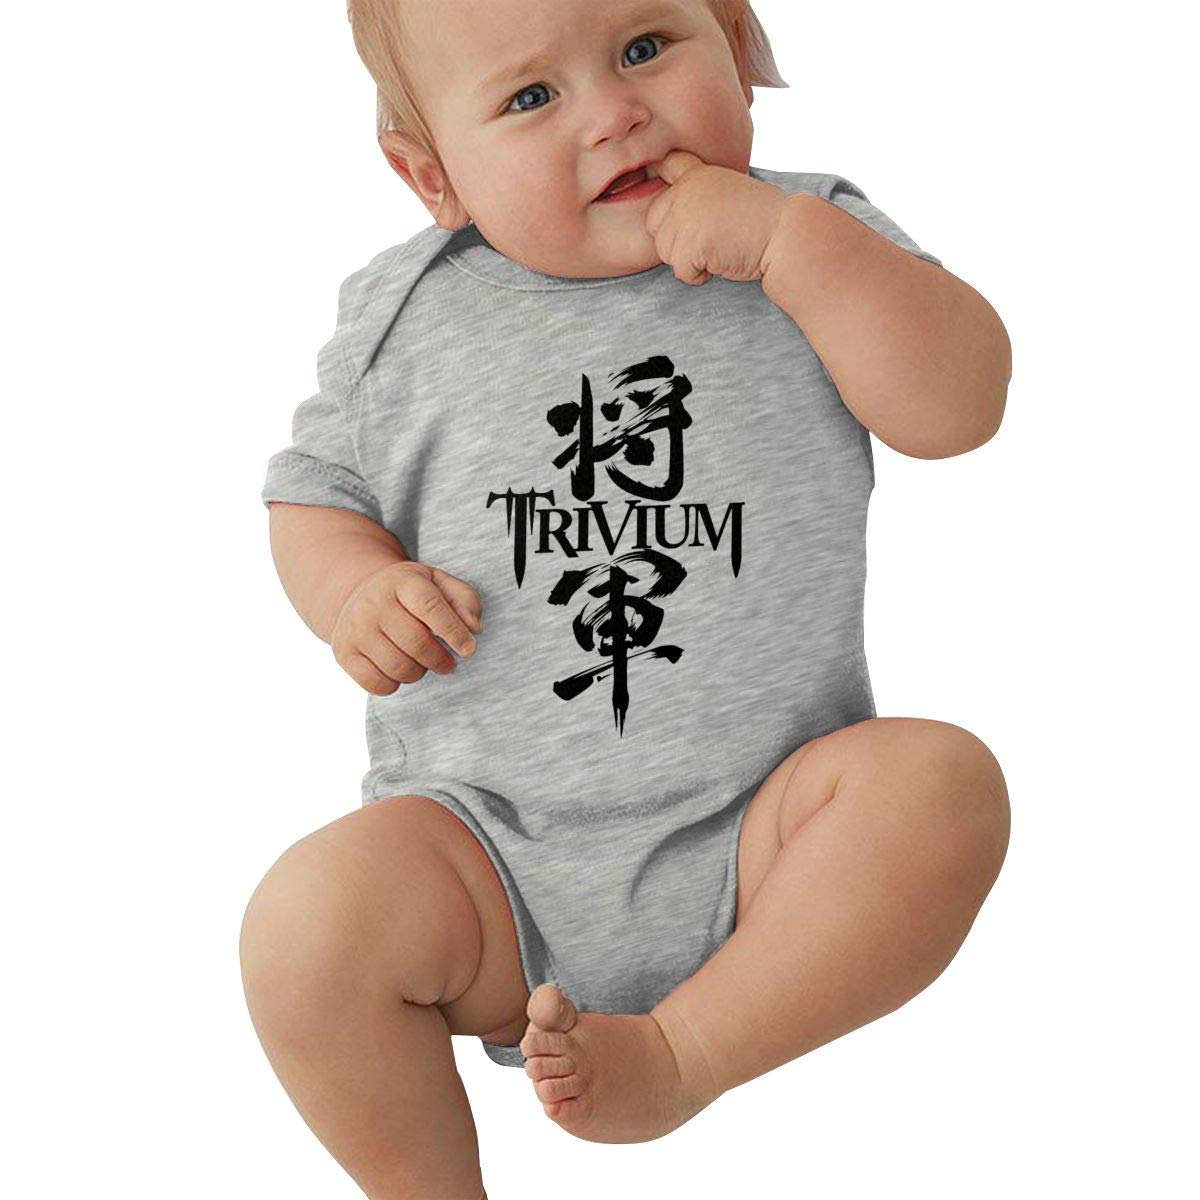 Smooffly Babys Bodysuit Clothes Trivium Cotton Short Sleeve Baby Playsuits Clothing